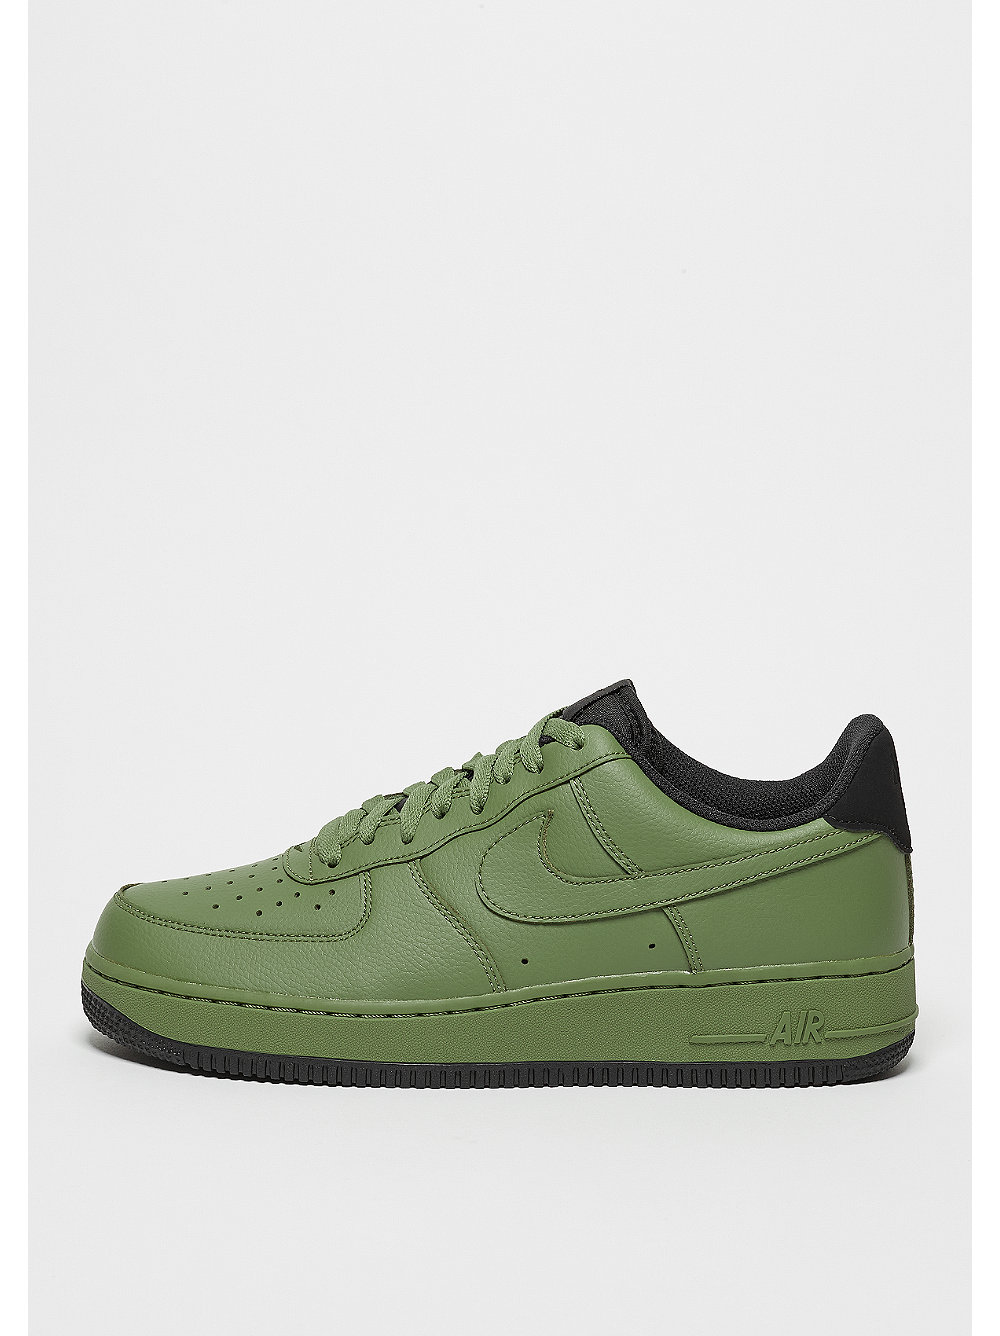 NIKE Air Force 1 07 palm palm online kopen